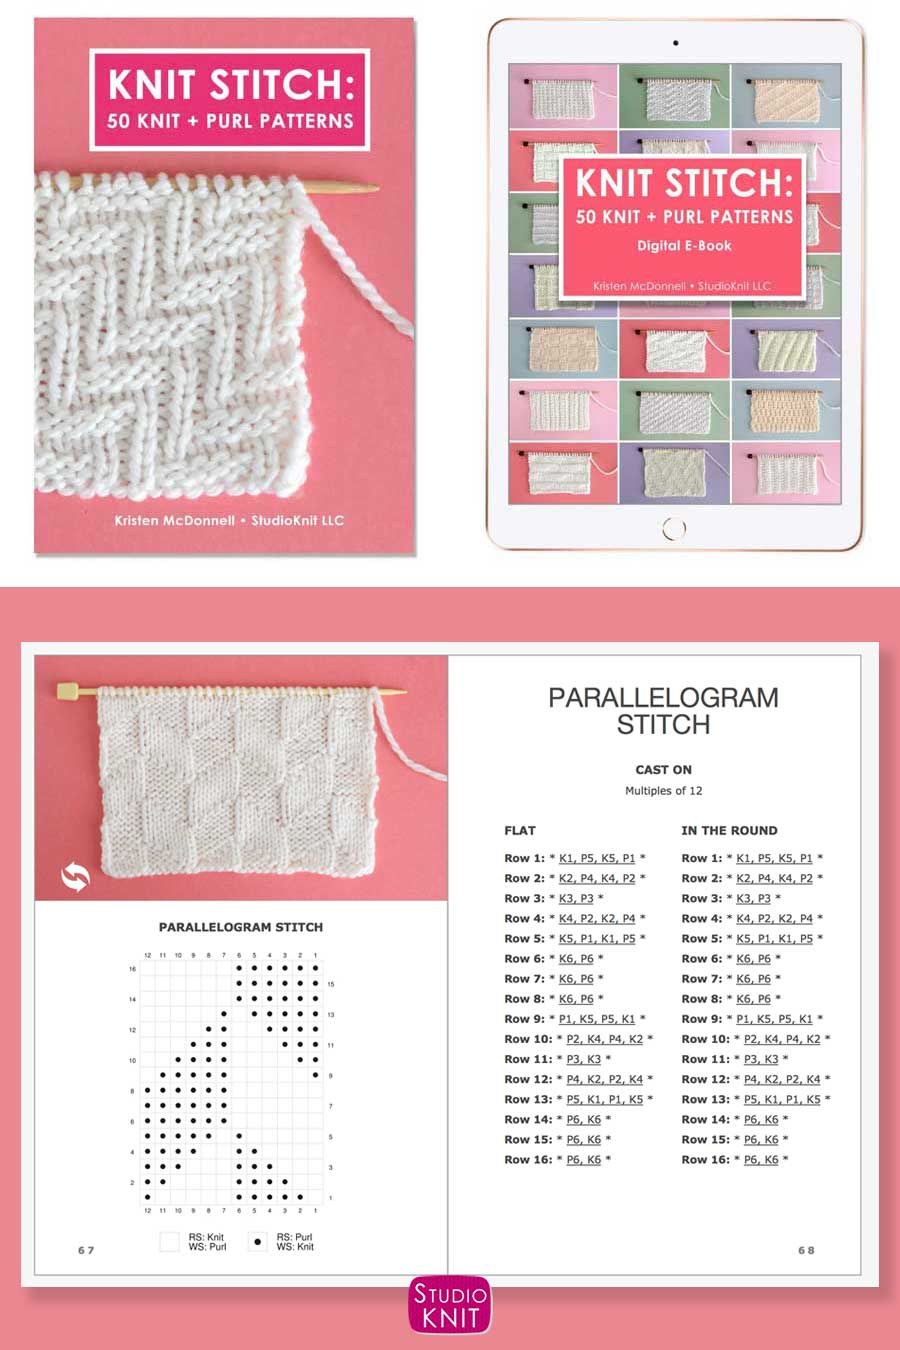 Knit Stitch Pattern Book with Parallelogram Stitch Pattern